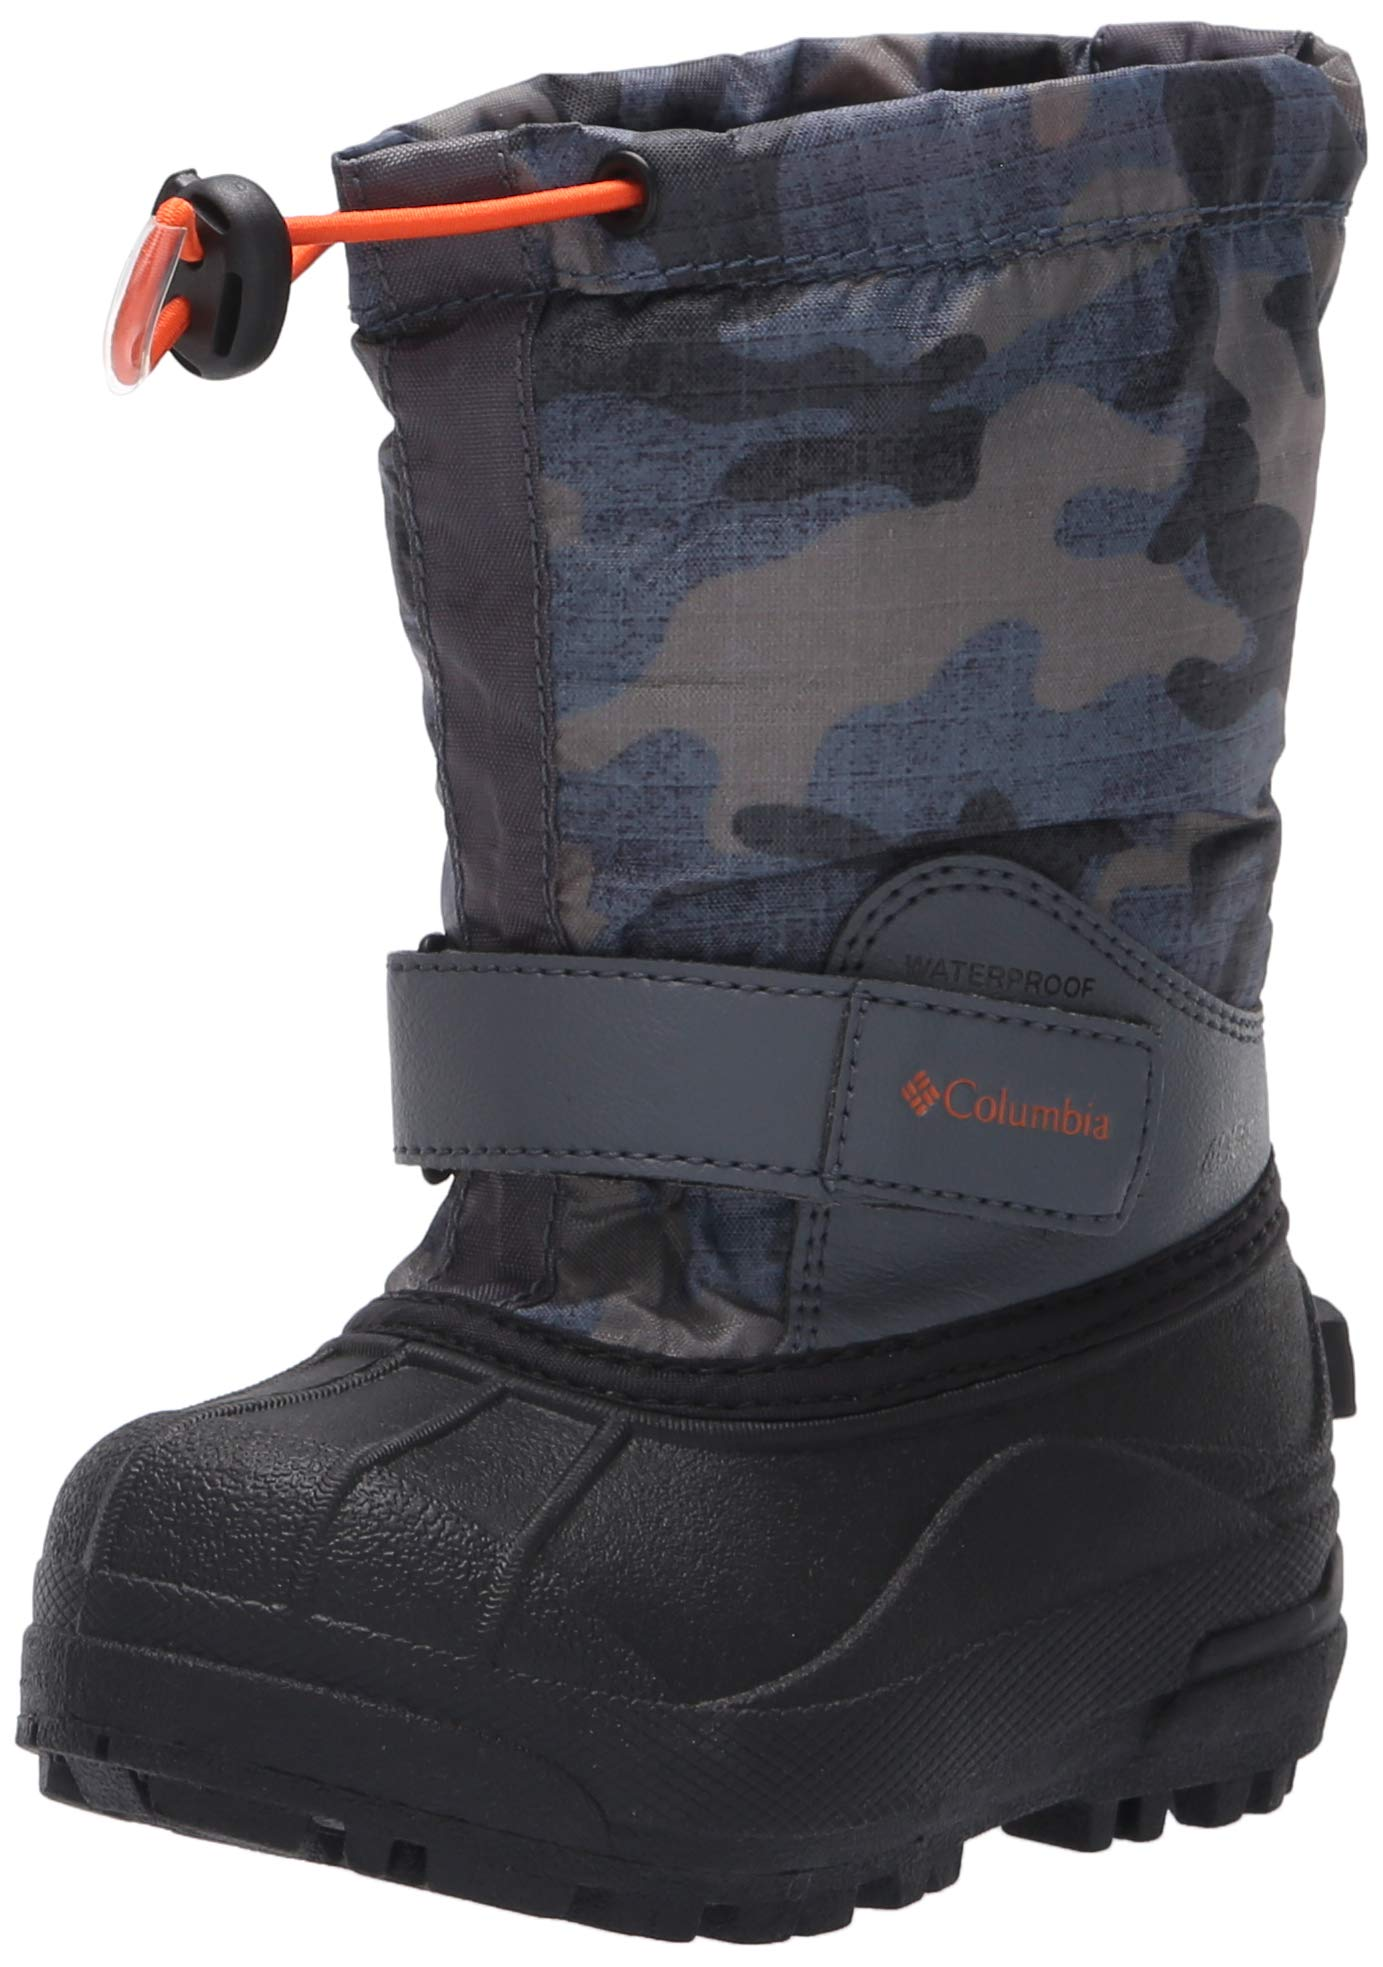 Columbia Boys' Childrens Powderbug Forty Print Snow Boot, Graphite, Heatwave, 8 Regular US Little Kid by Columbia (Image #1)